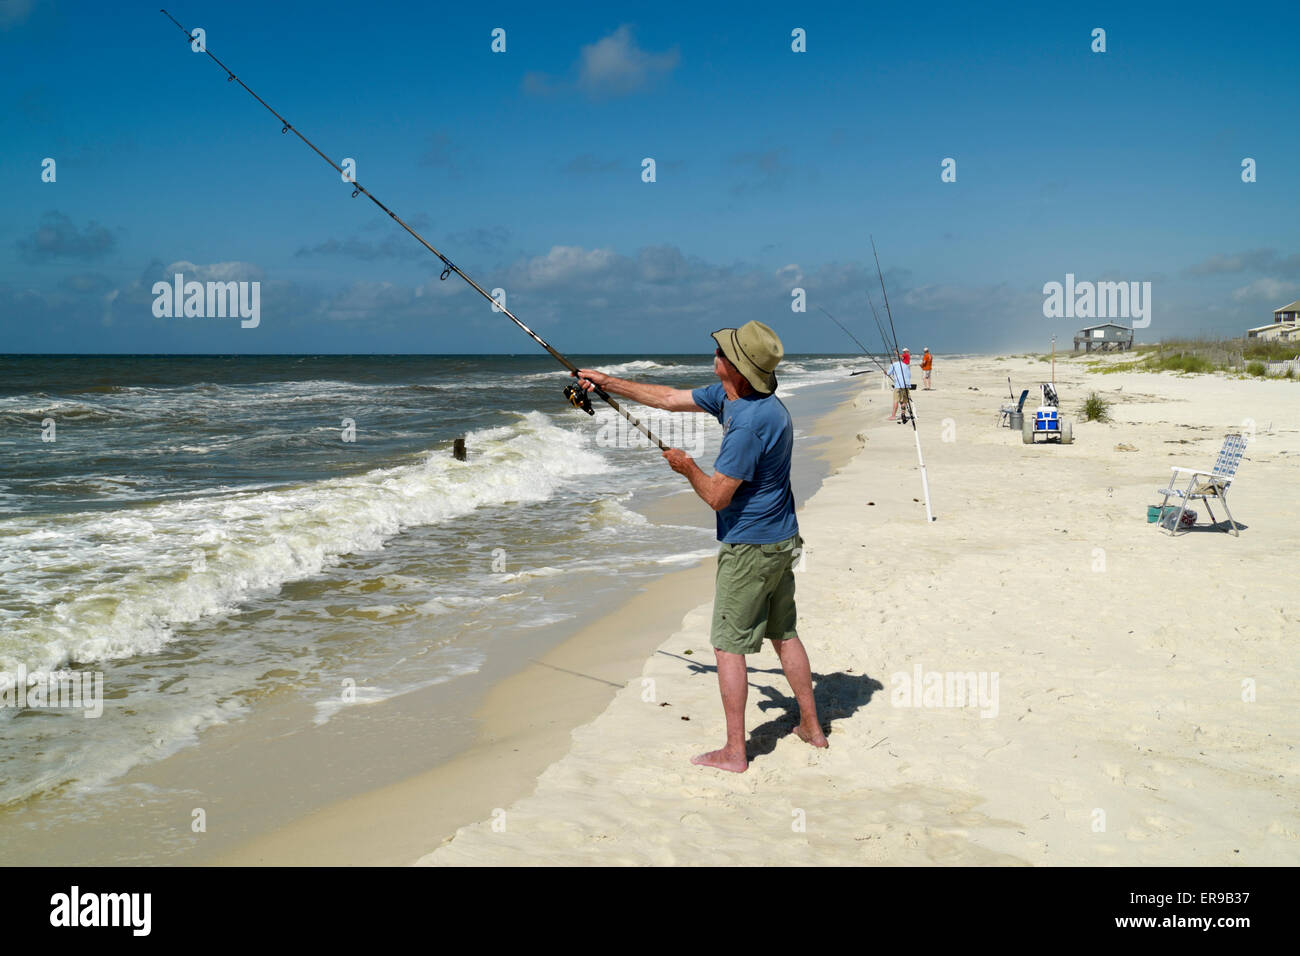 Image result for images of surf fishing